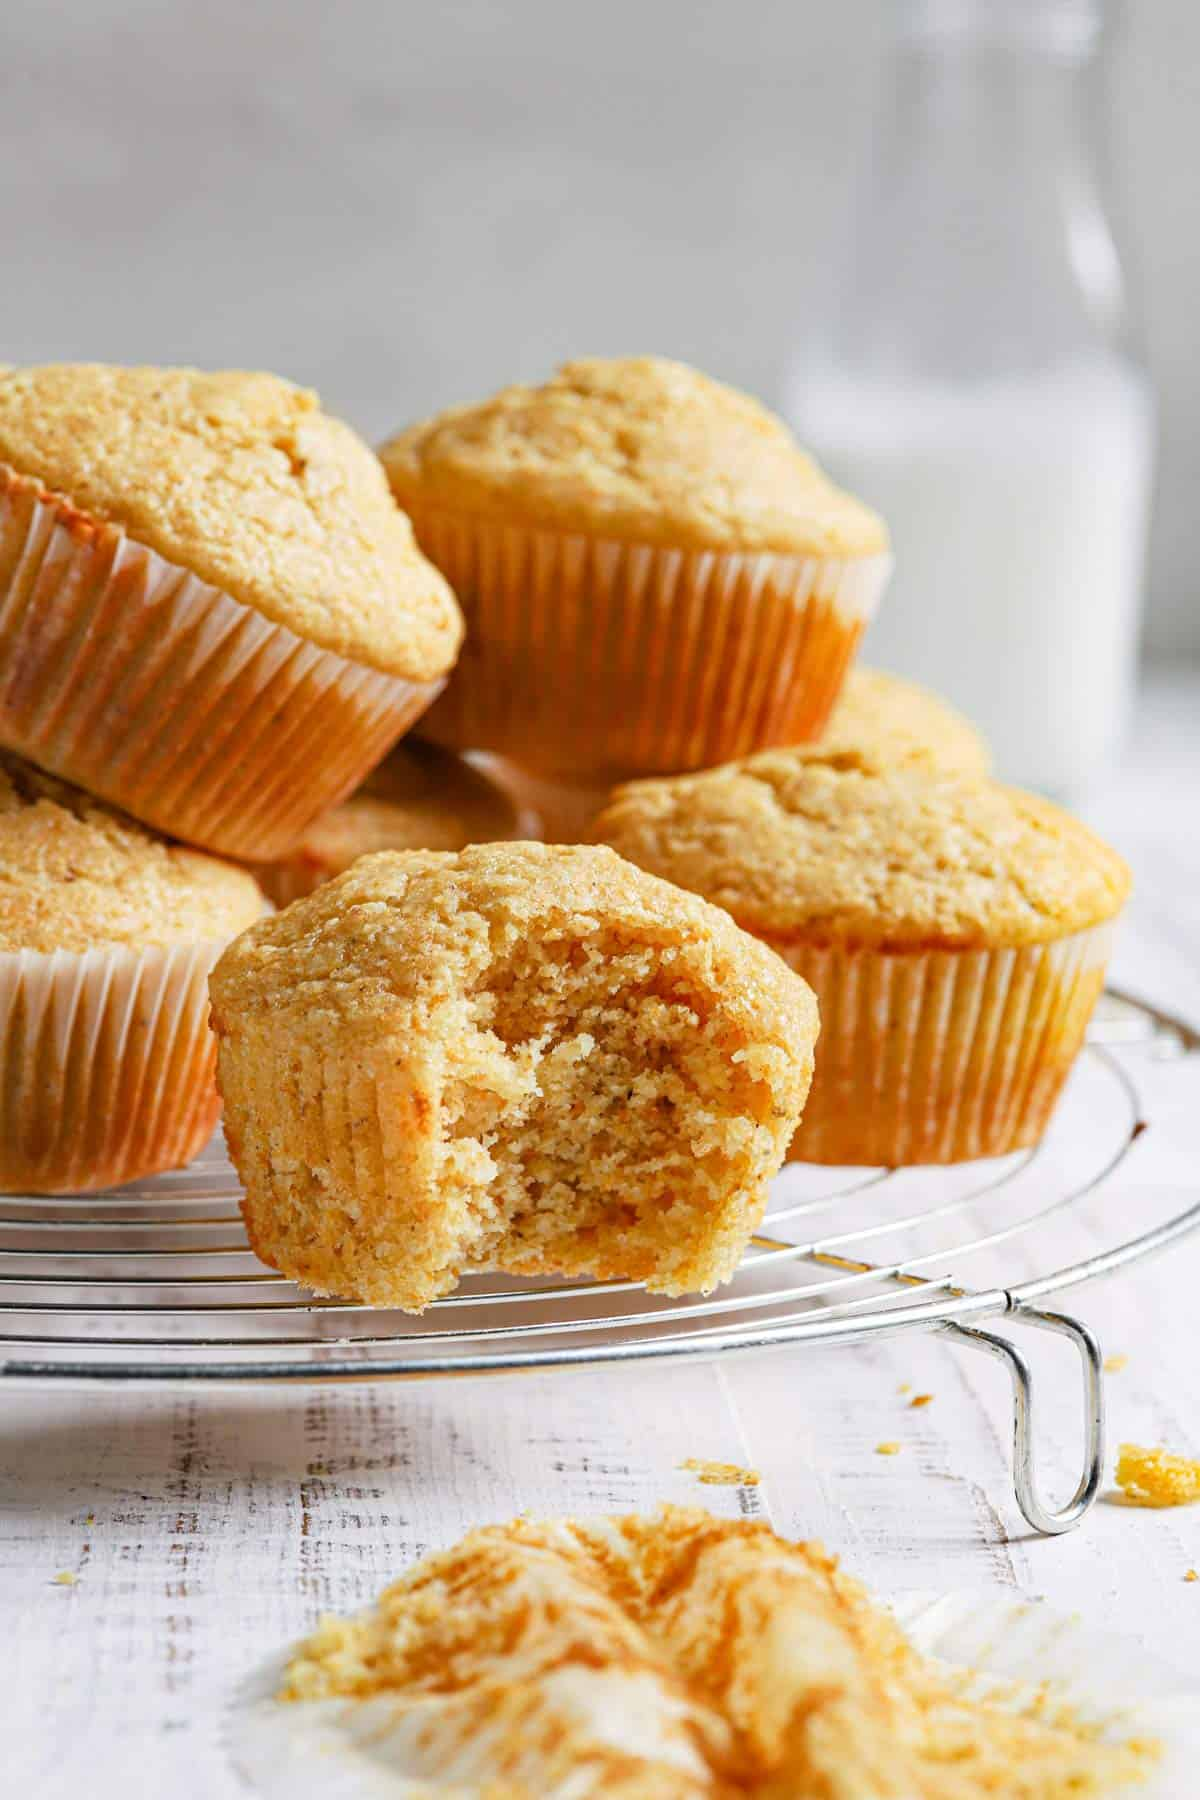 Fresh cornbread muffins on a wire rack with the front muffin missing a bite and a jug of milk in the back.